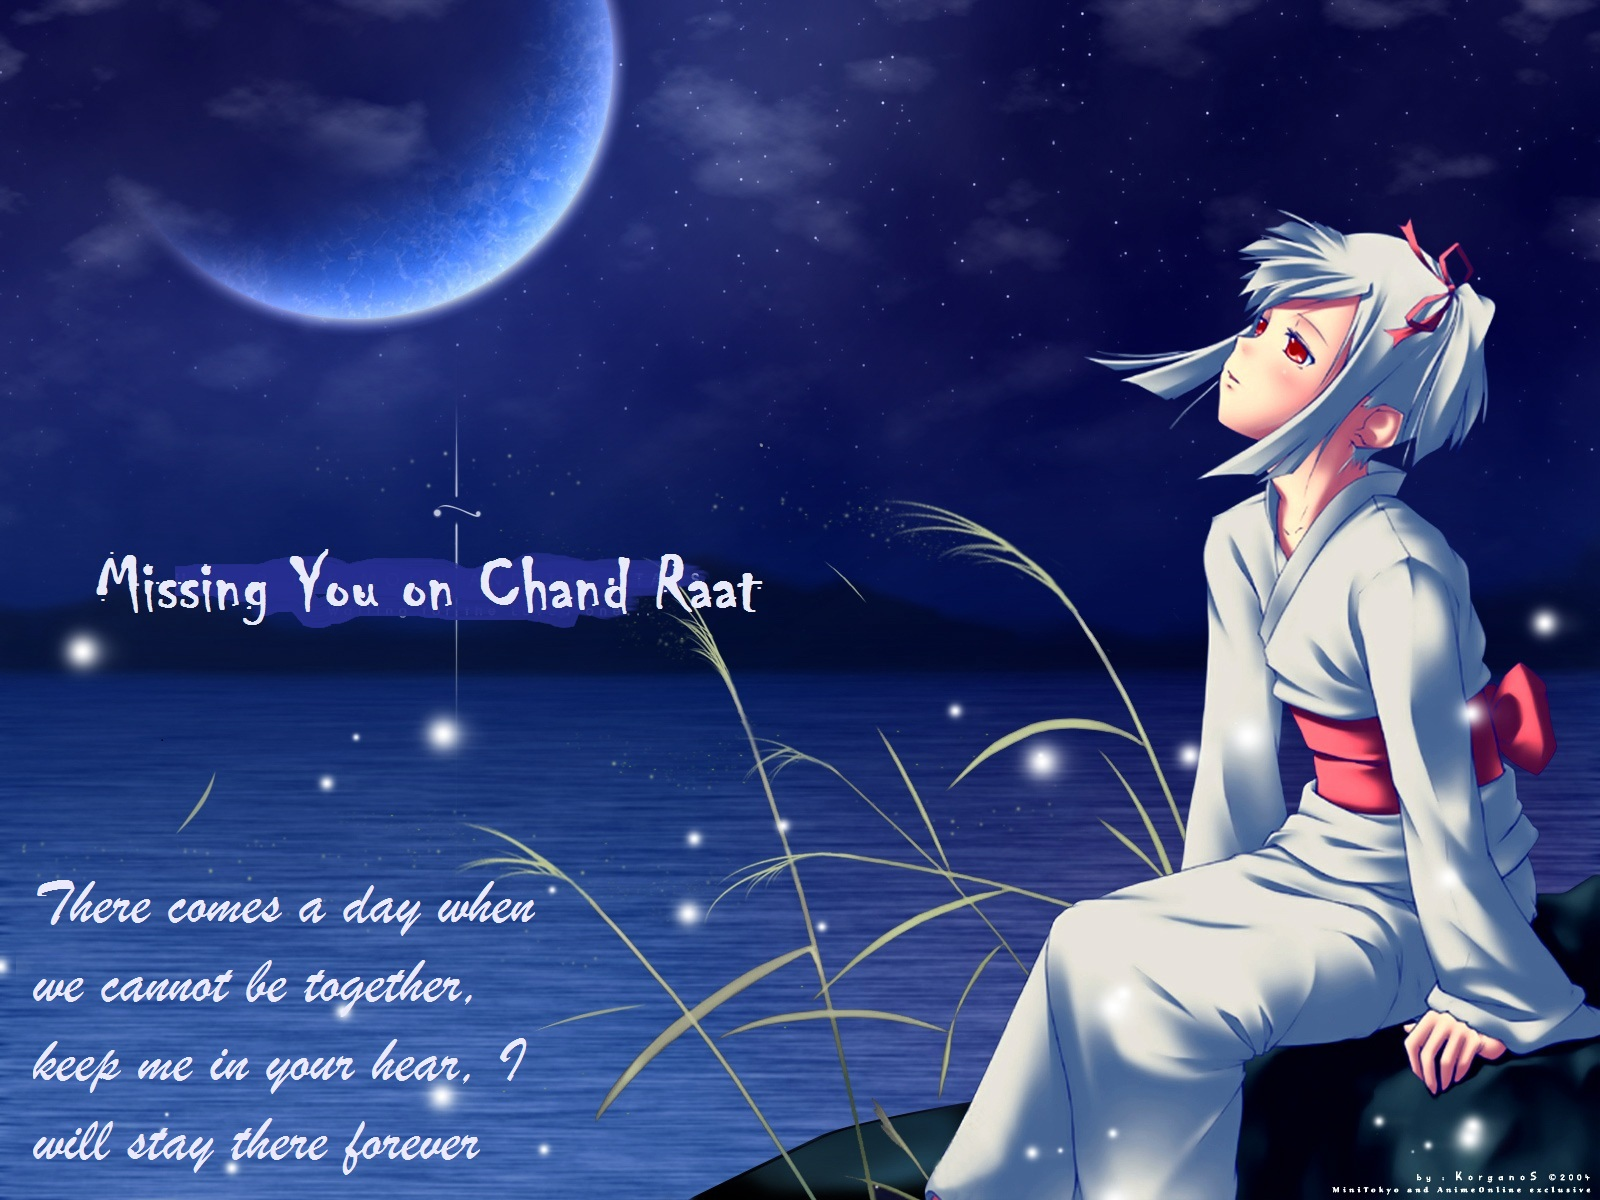 Chand Raat Wishes Sms Greetings Cards Pictures Wallpapers Ramadan